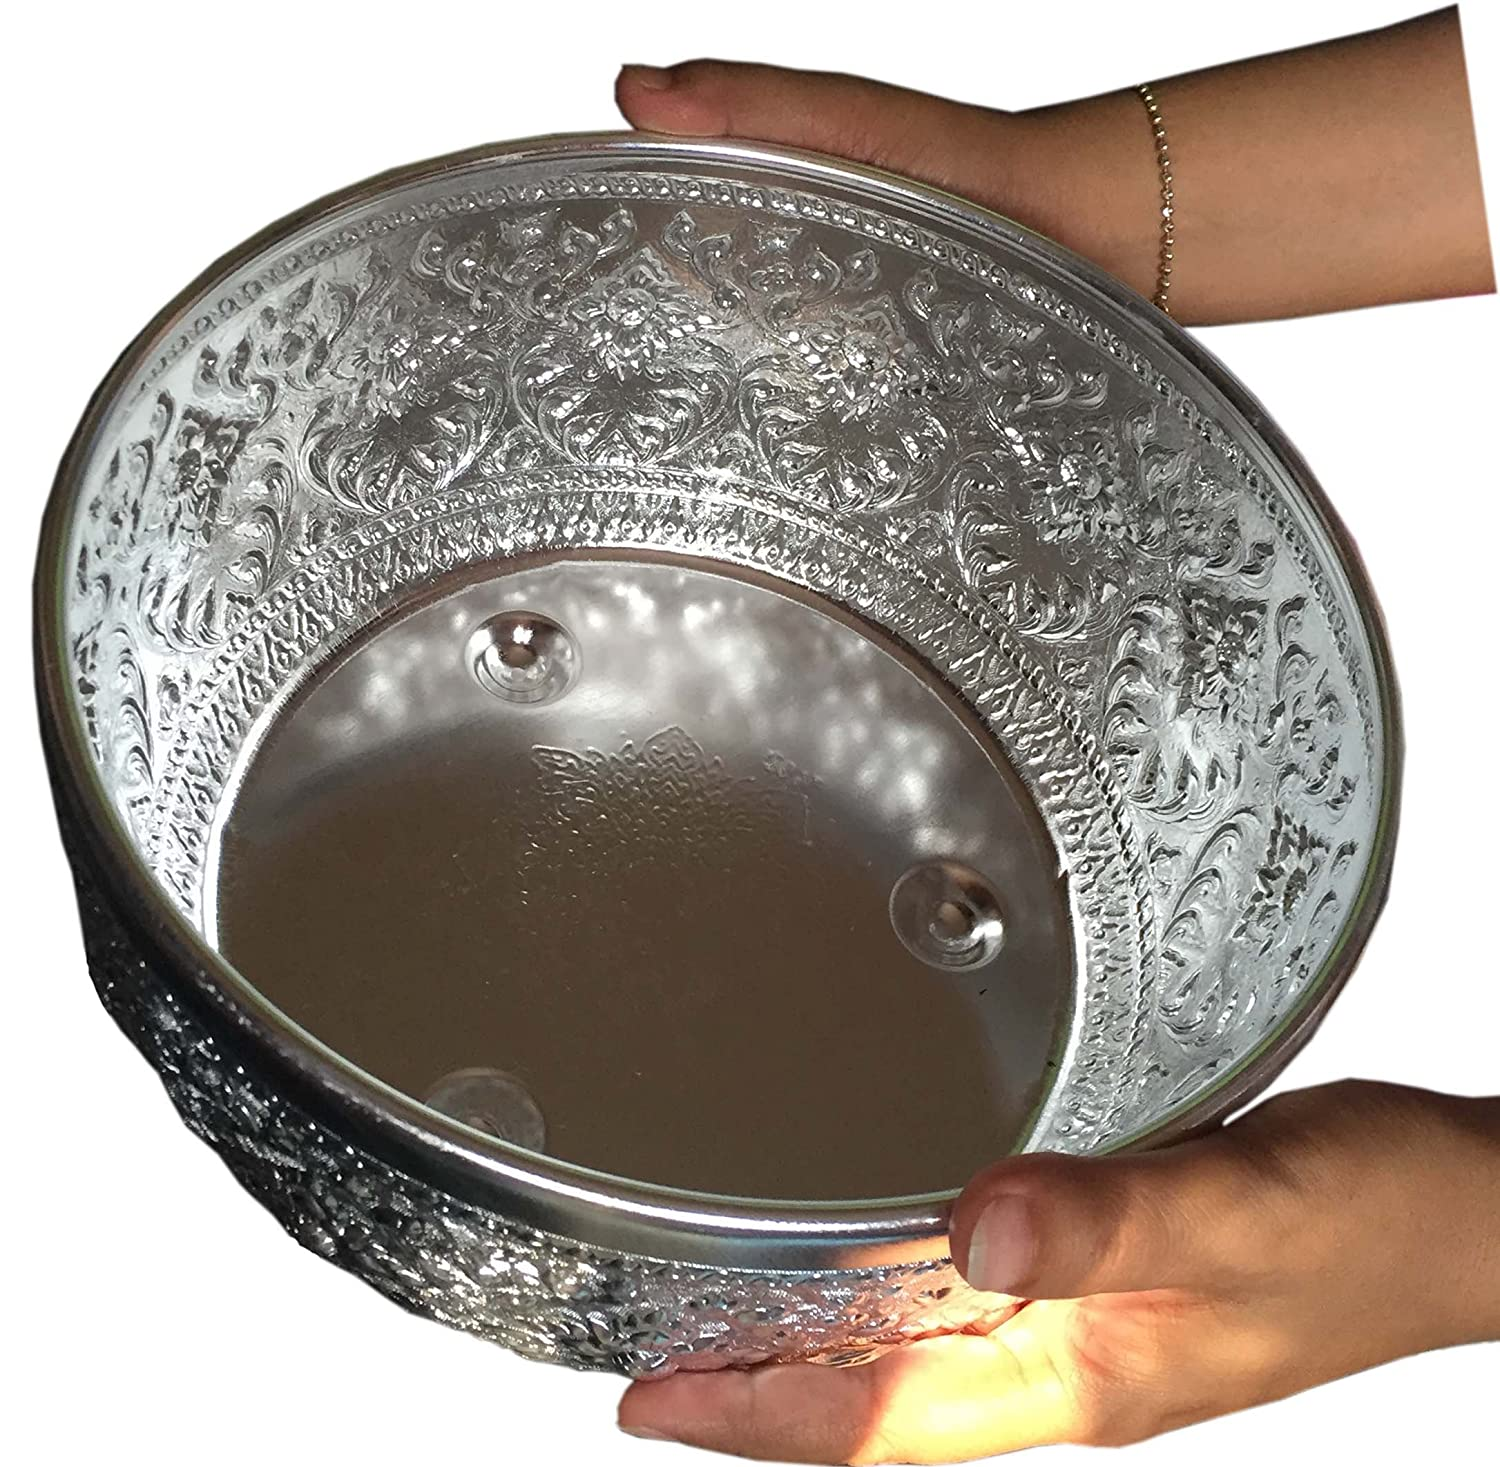 Ni_On Aluminum water bowl Thai design silver sterling serving Diameter 10.5